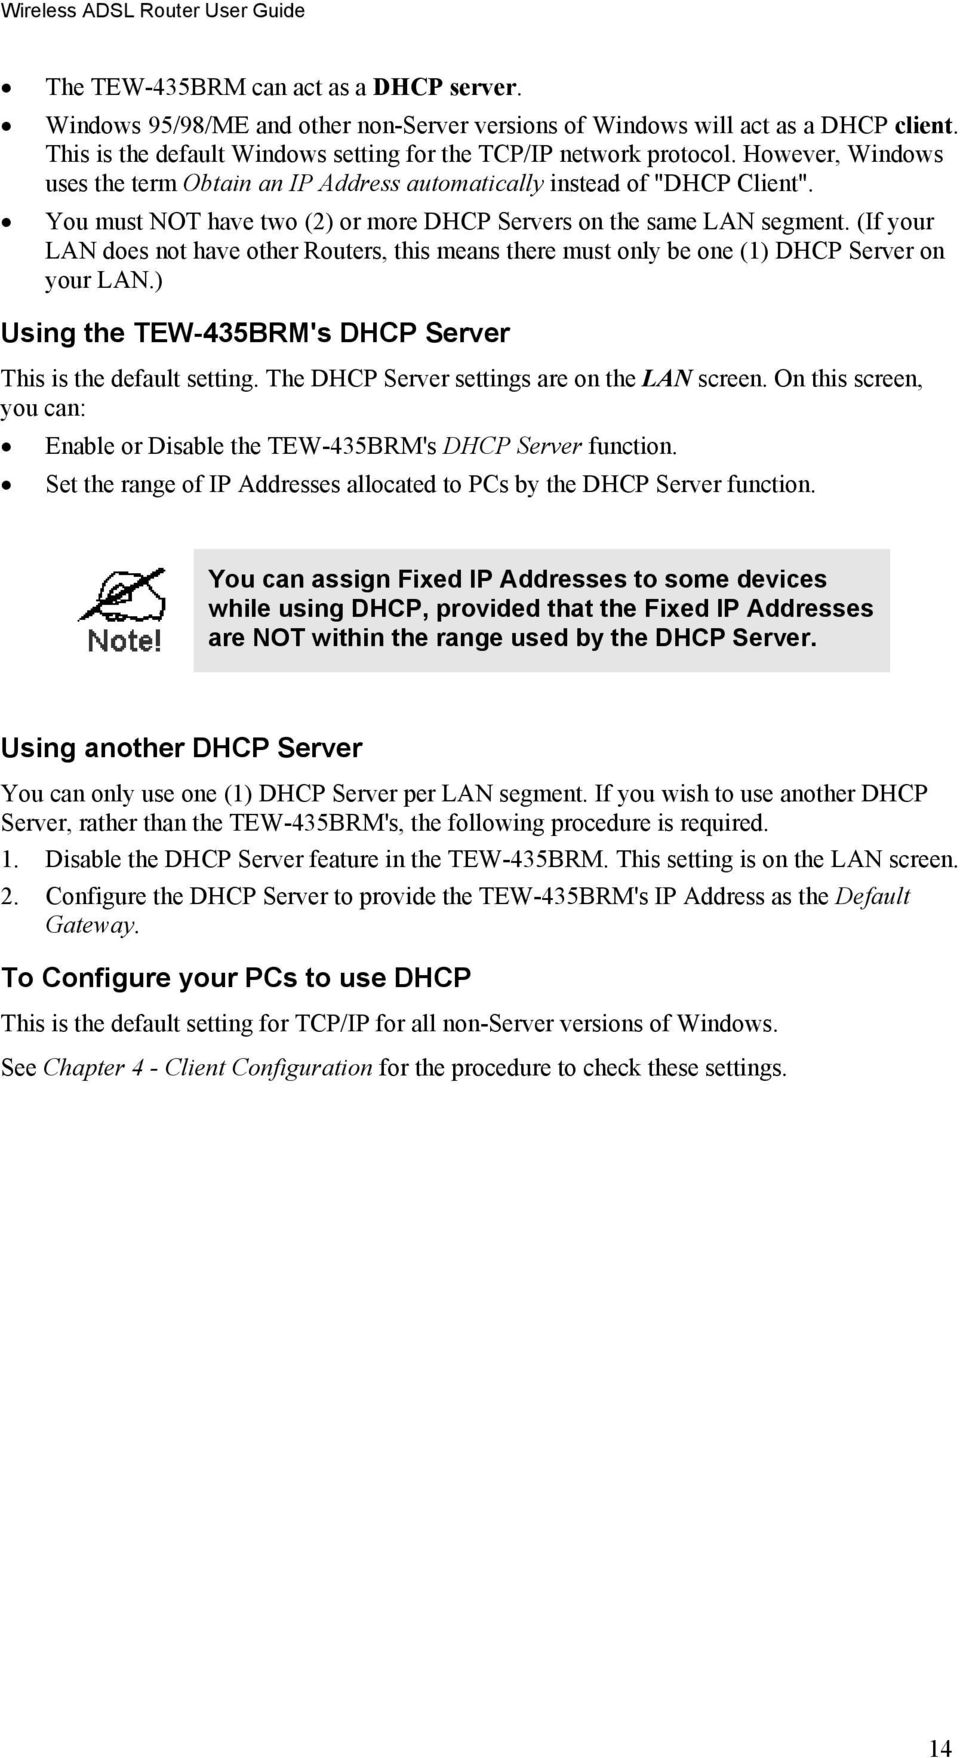 You must NOT have two (2) or more DHCP Servers on the same LAN segment. (If your LAN does not have other Routers, this means there must only be one (1) DHCP Server on your LAN.